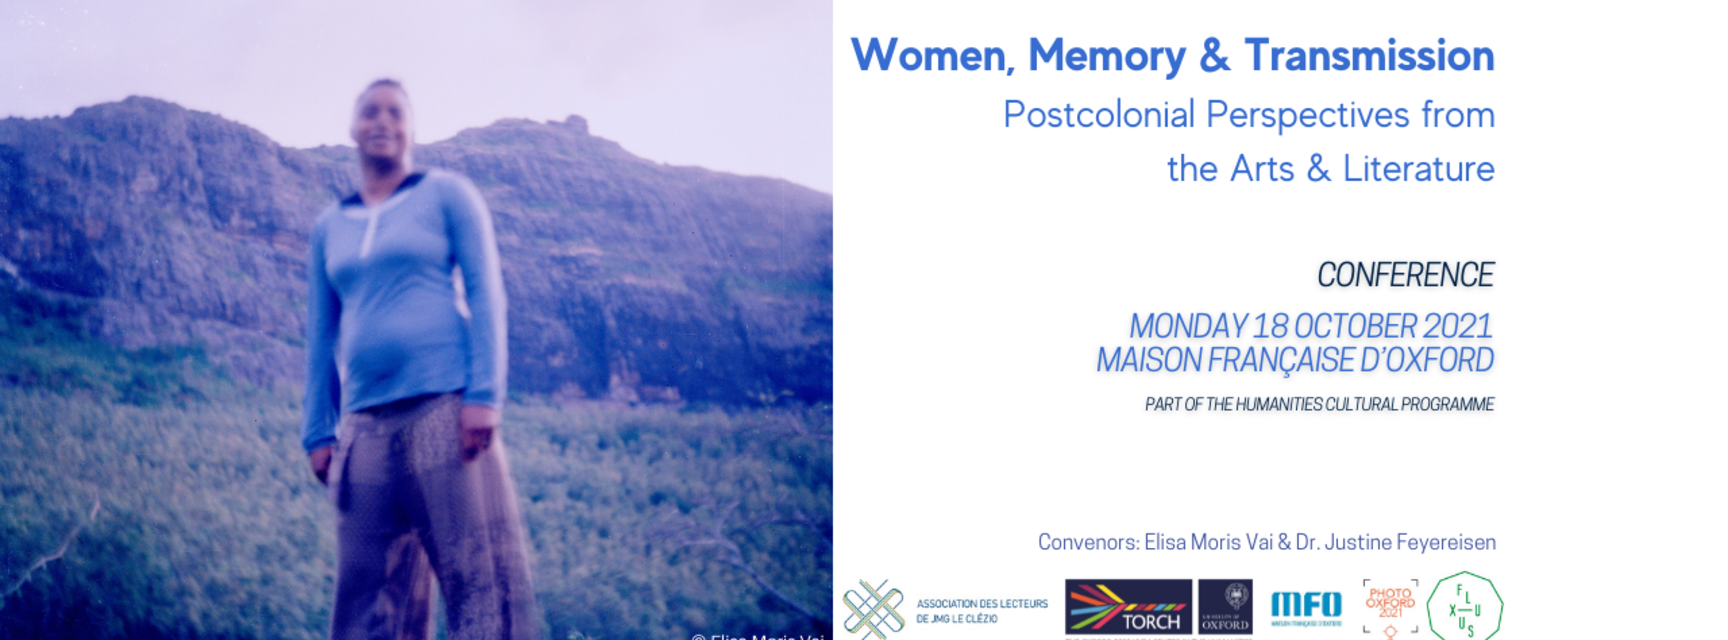 Photo of a woman in front of some hills. Text reads 'Women memory and transmission, postcolonial perspectives from the arts and literature. Conference. Monday 18 October 2-21, Maison Francaise d'Oxford.'